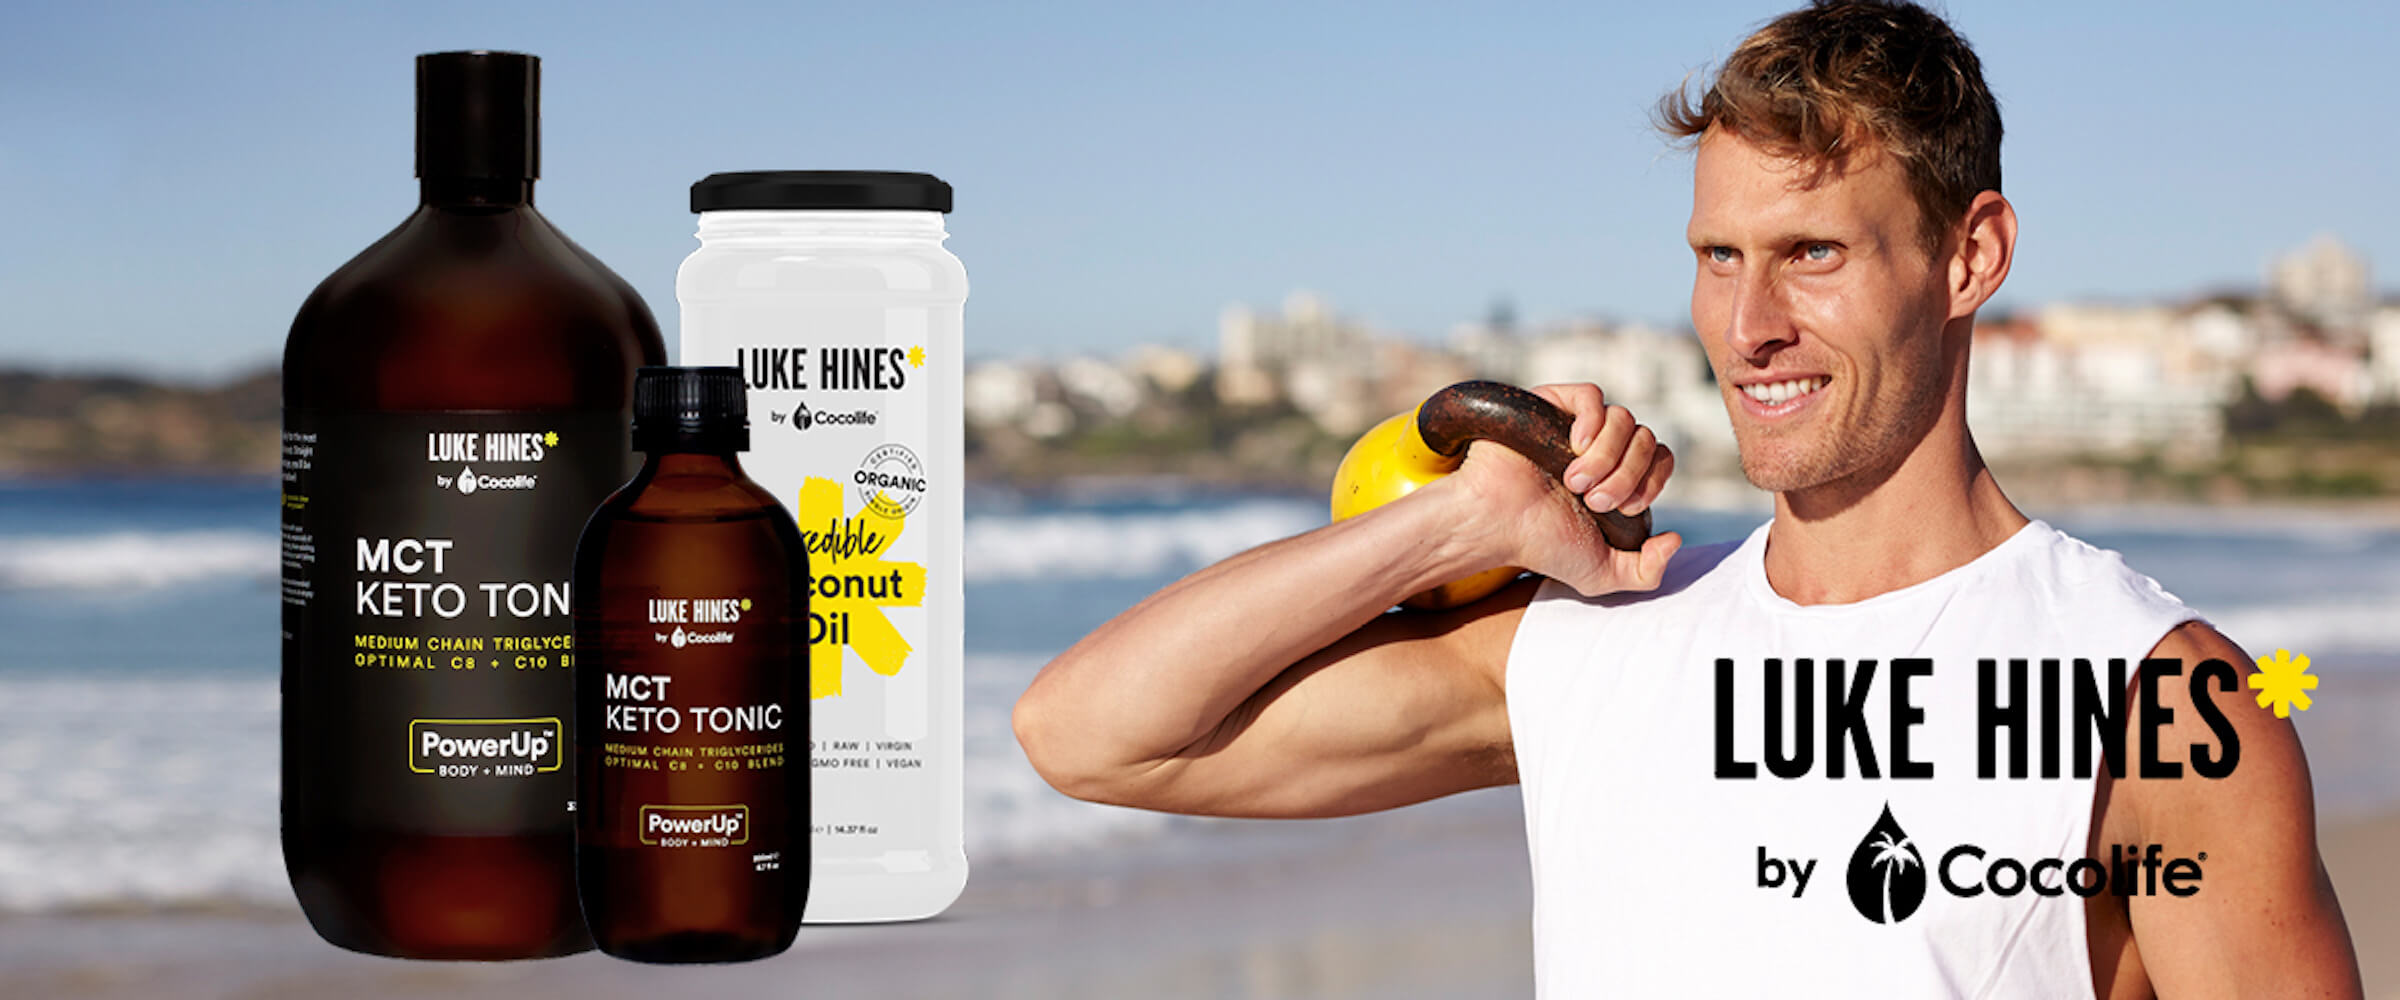 Luke Hines by Cocolife MCT Keto Tonic and Coconut Oil range. Vegan and Organic.